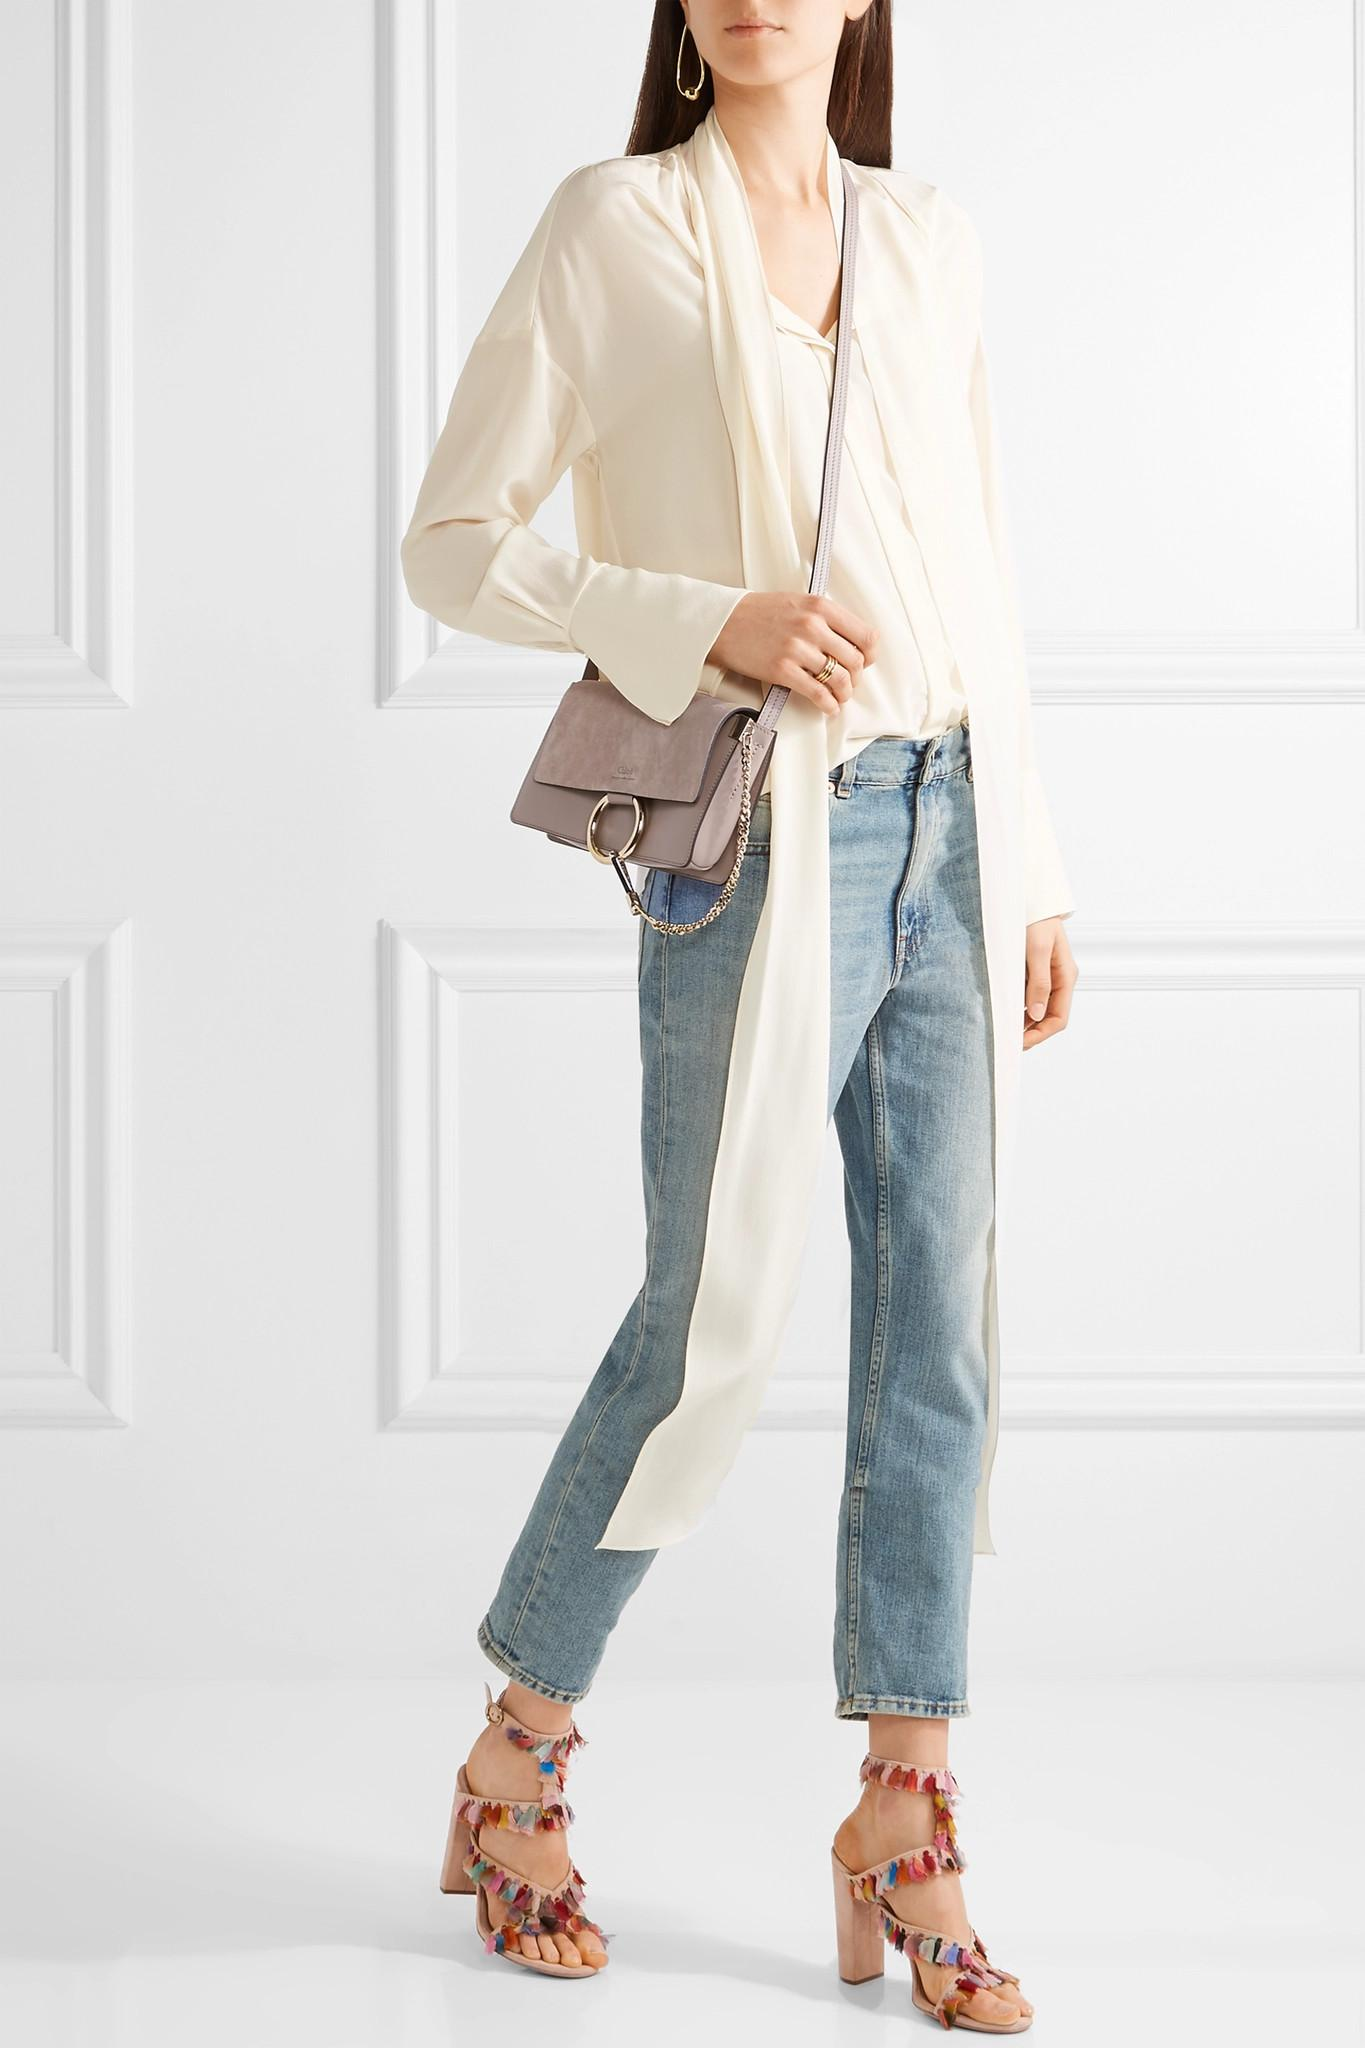 6adafac9d50 Chloé Faye Small Leather And Suede Shoulder Bag - Lyst